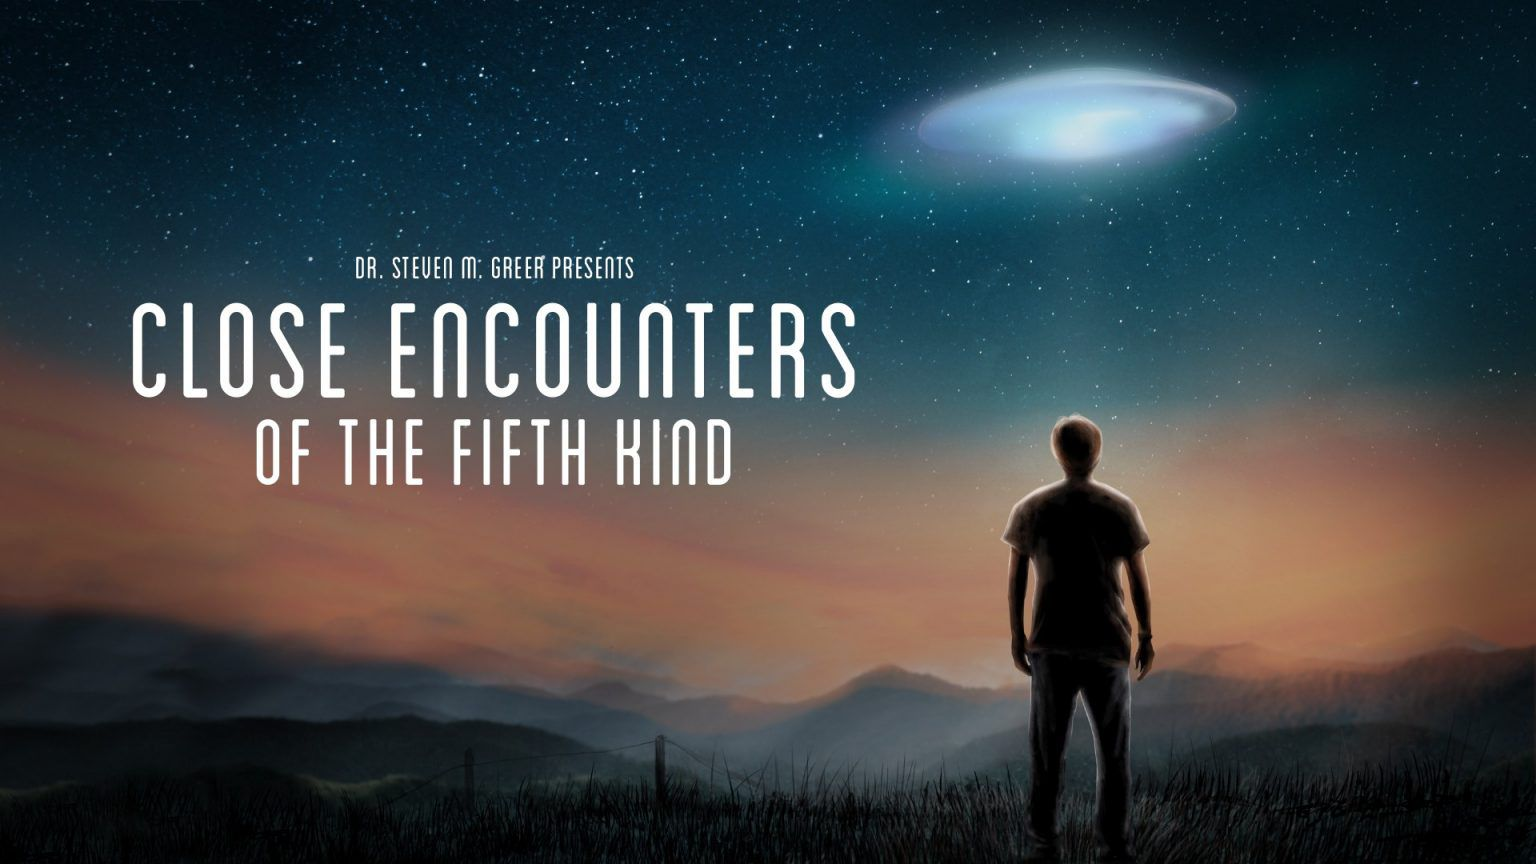 Close Encounters of the Fifth Kind poster